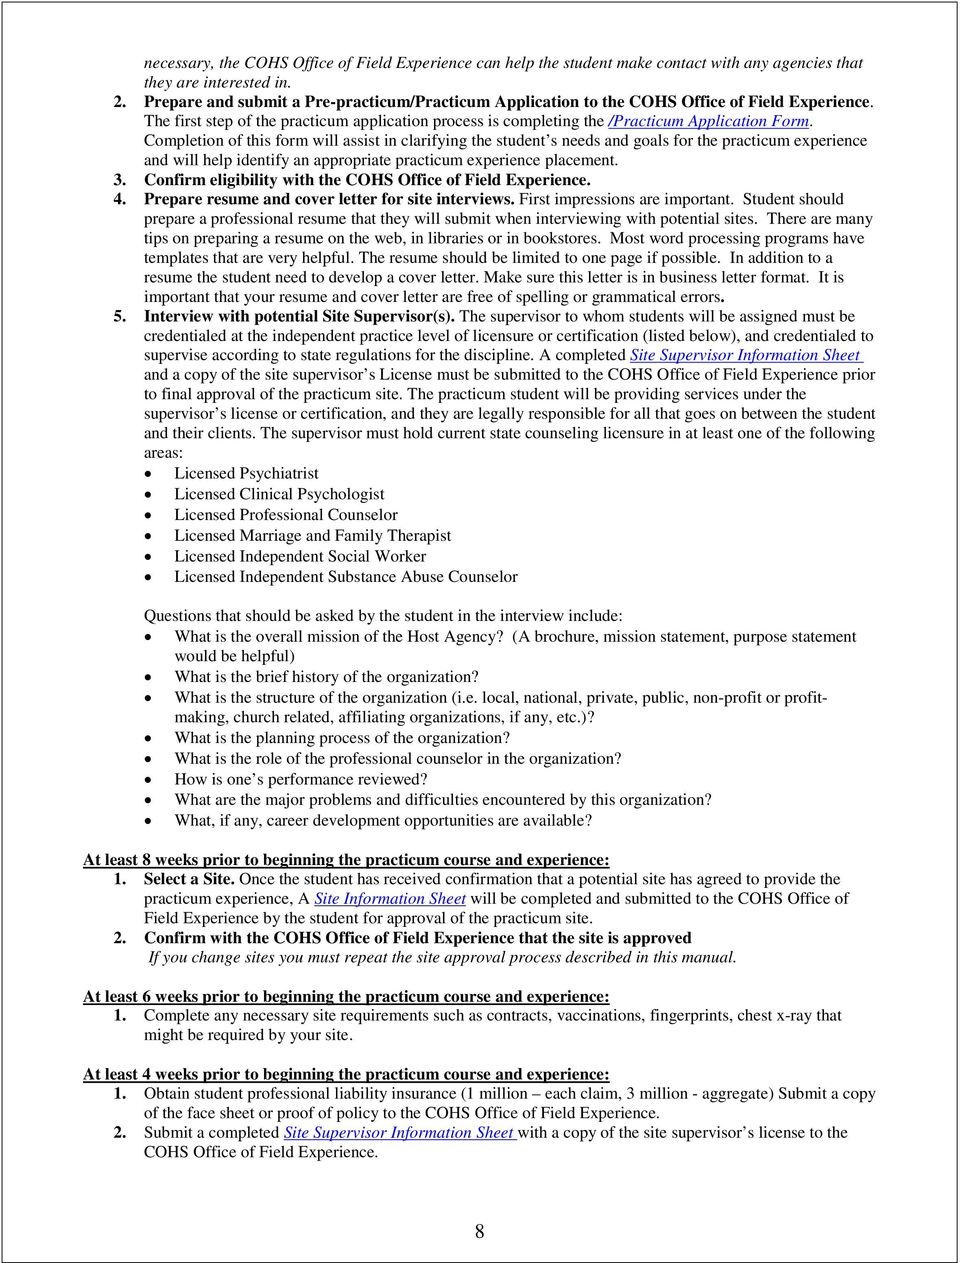 sample cover letter for practicum - grand canyon university bachelors in counseling practicum